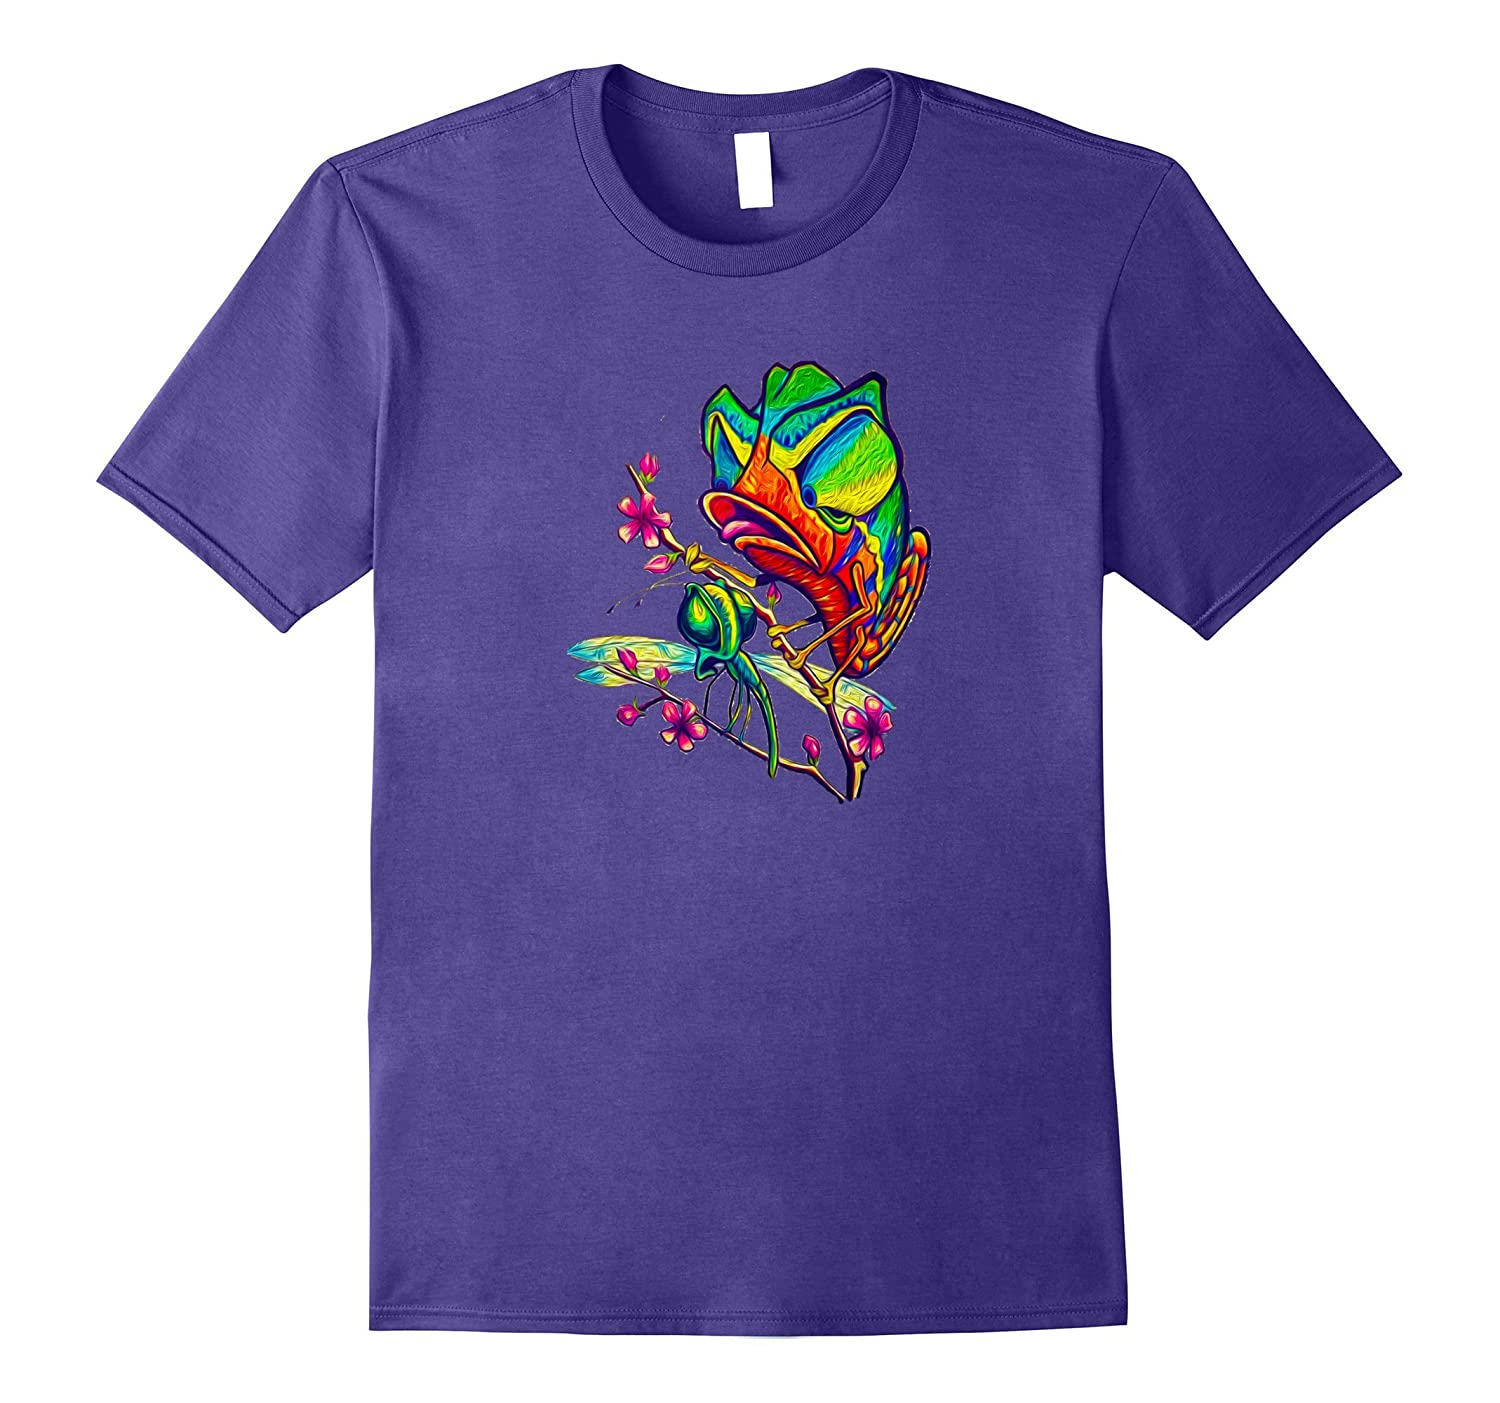 Chameleon Attack New School Original Art Bright Colors Tee